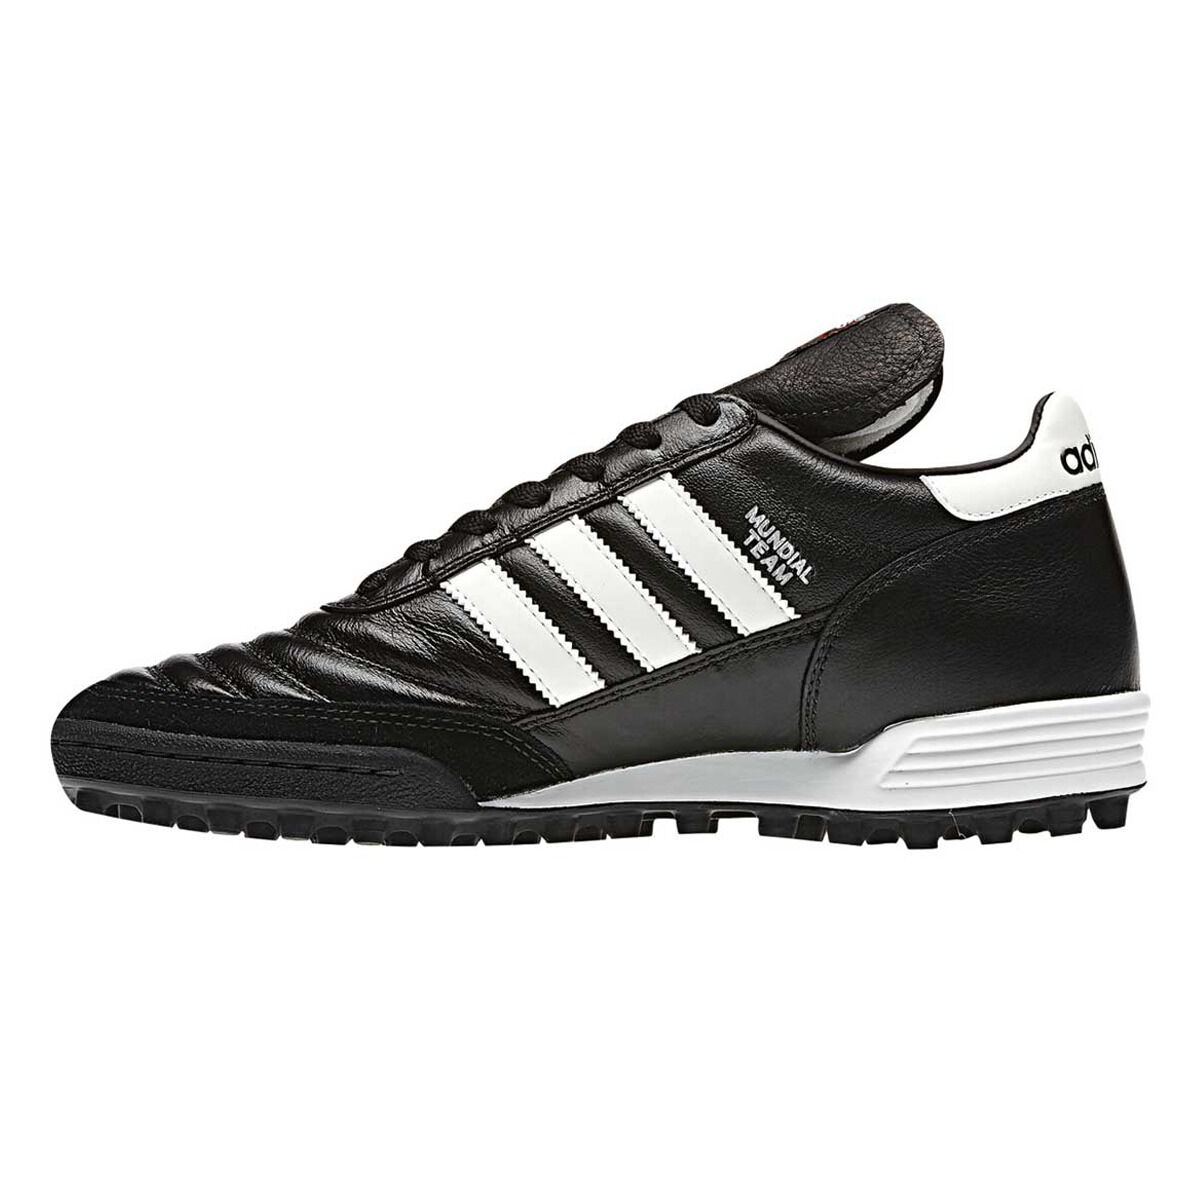 adidas Mundial Team Mens Touch and Turf Shoes Black / White US 13